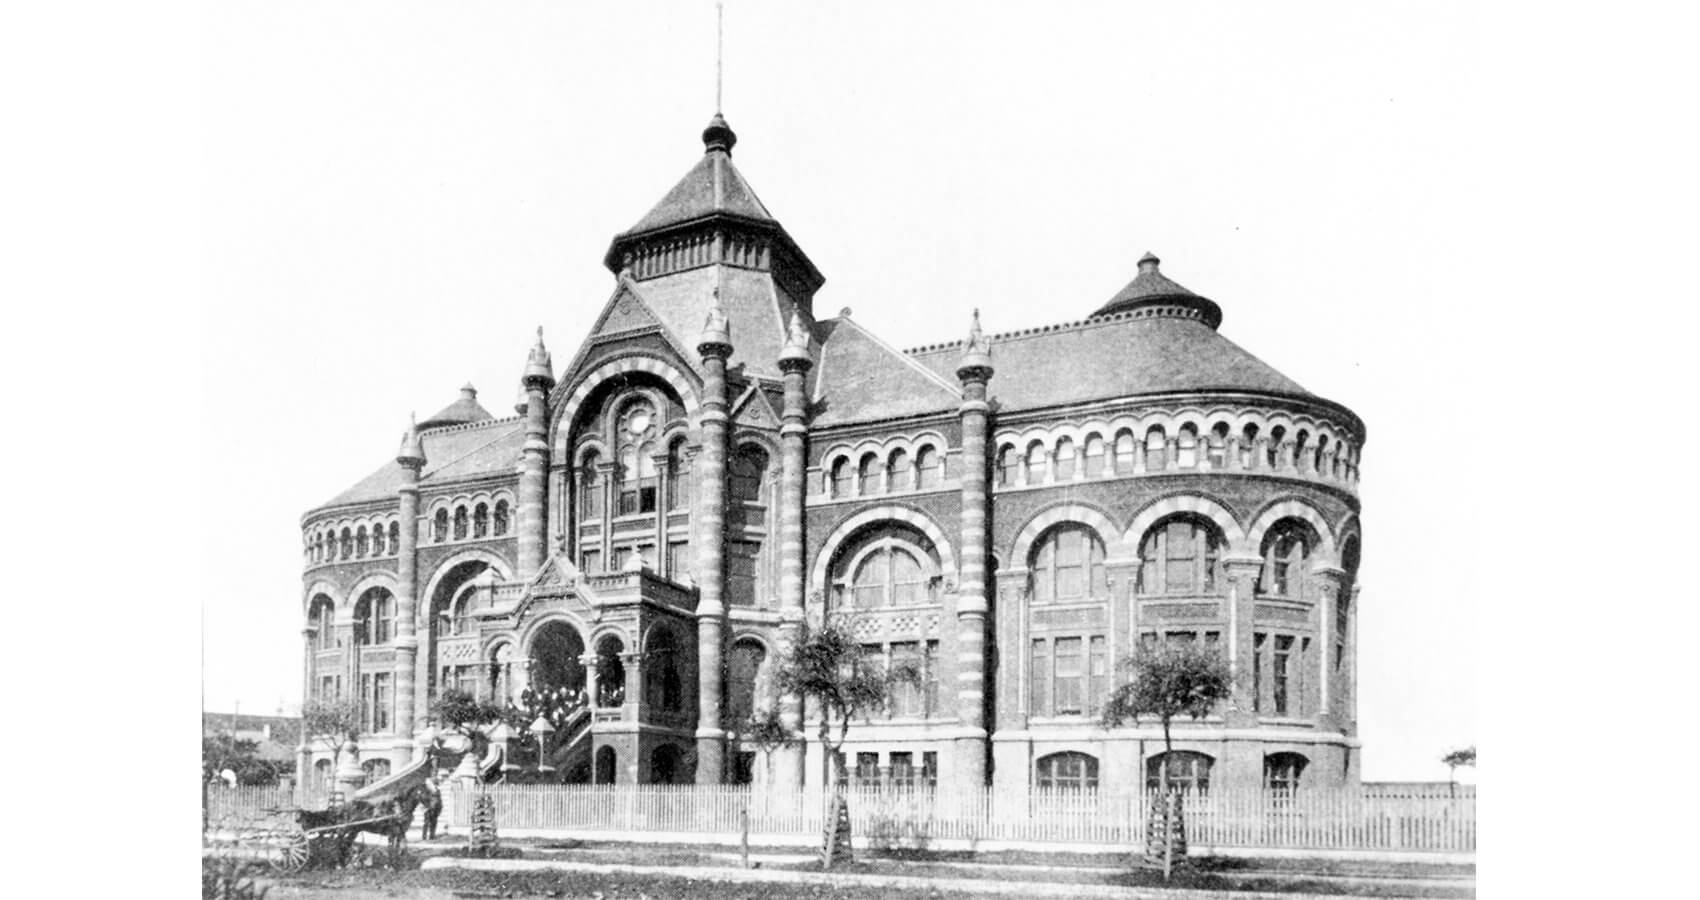 The Ashbel Smith Building, or Old Red, pictured in 1895.